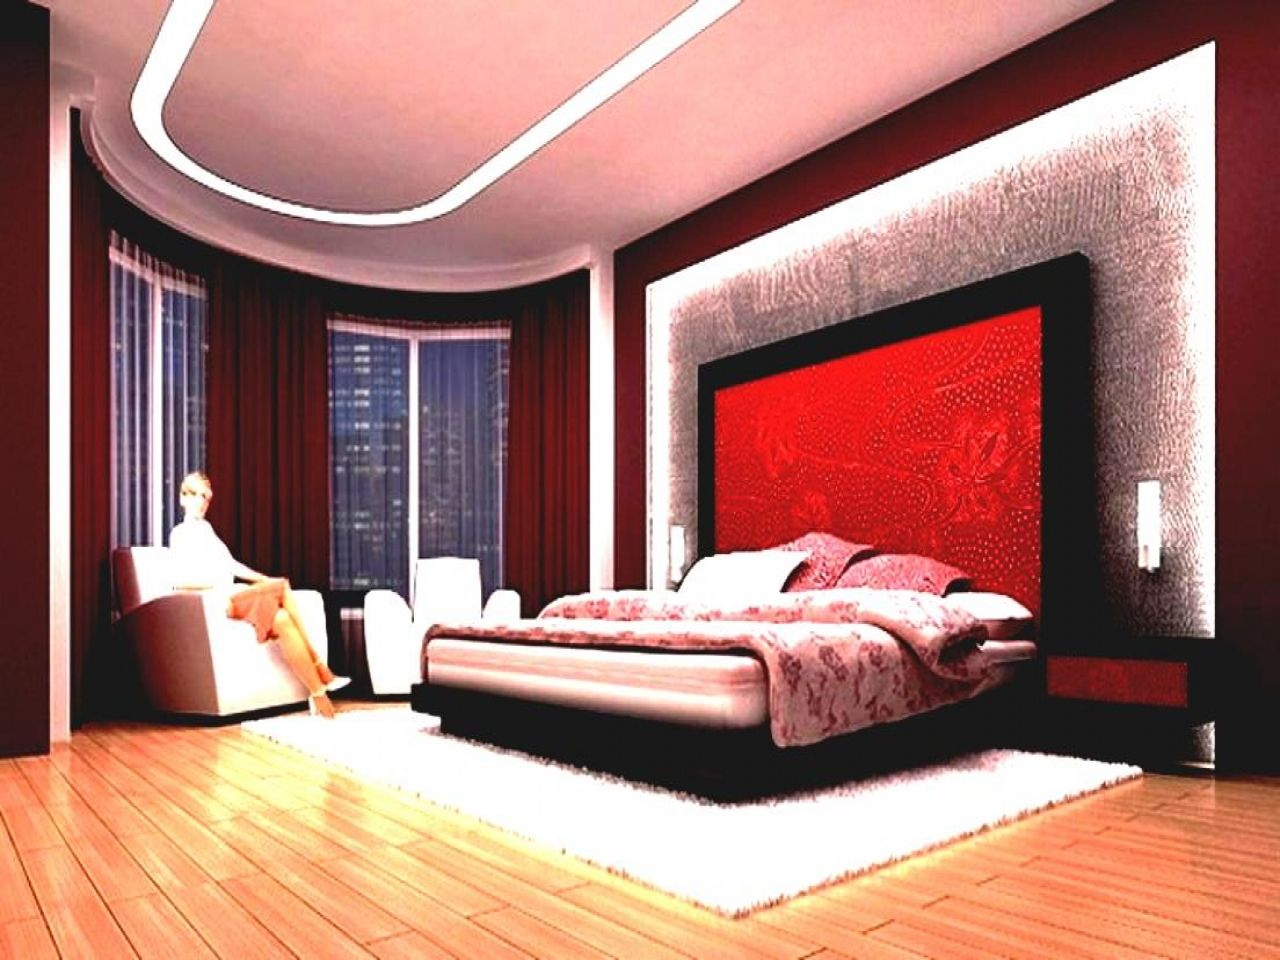 Bedroom decor ideas decorating for married couples lovely designs